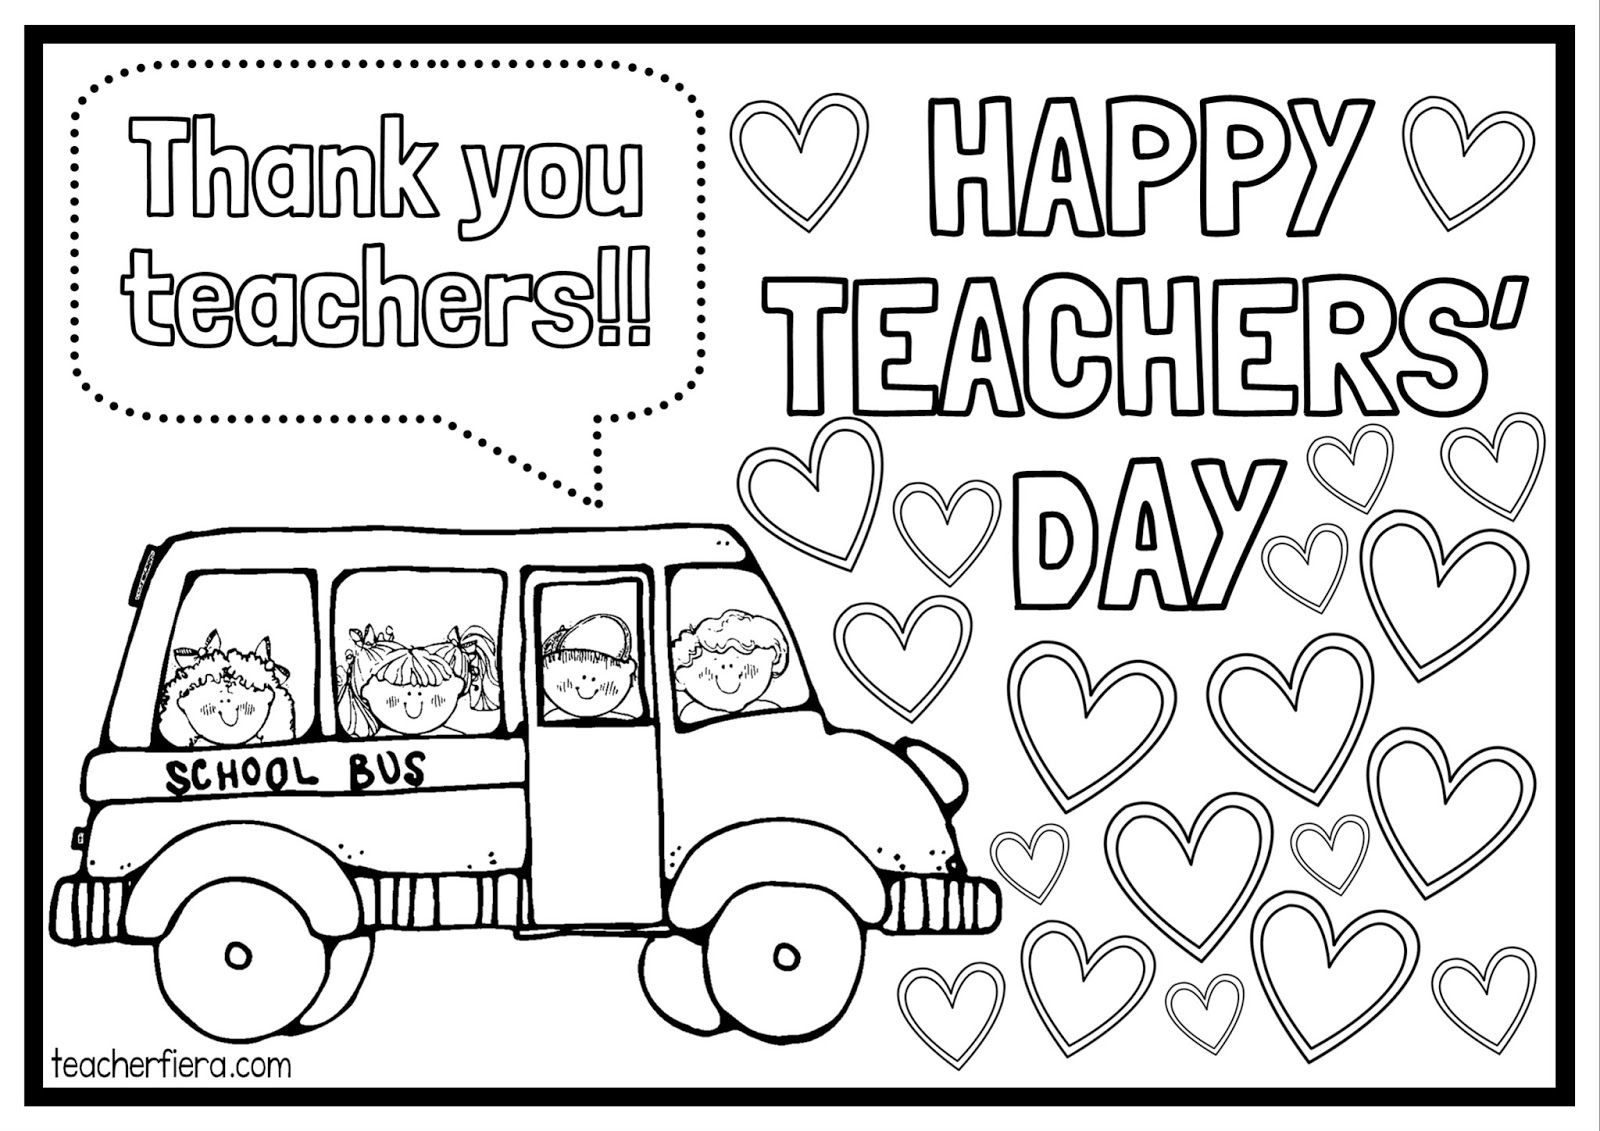 Coloring Pages Of Teachers Day Best Ideas For Printable And Happy Teachers Day Teachers Day Teachers Day Card